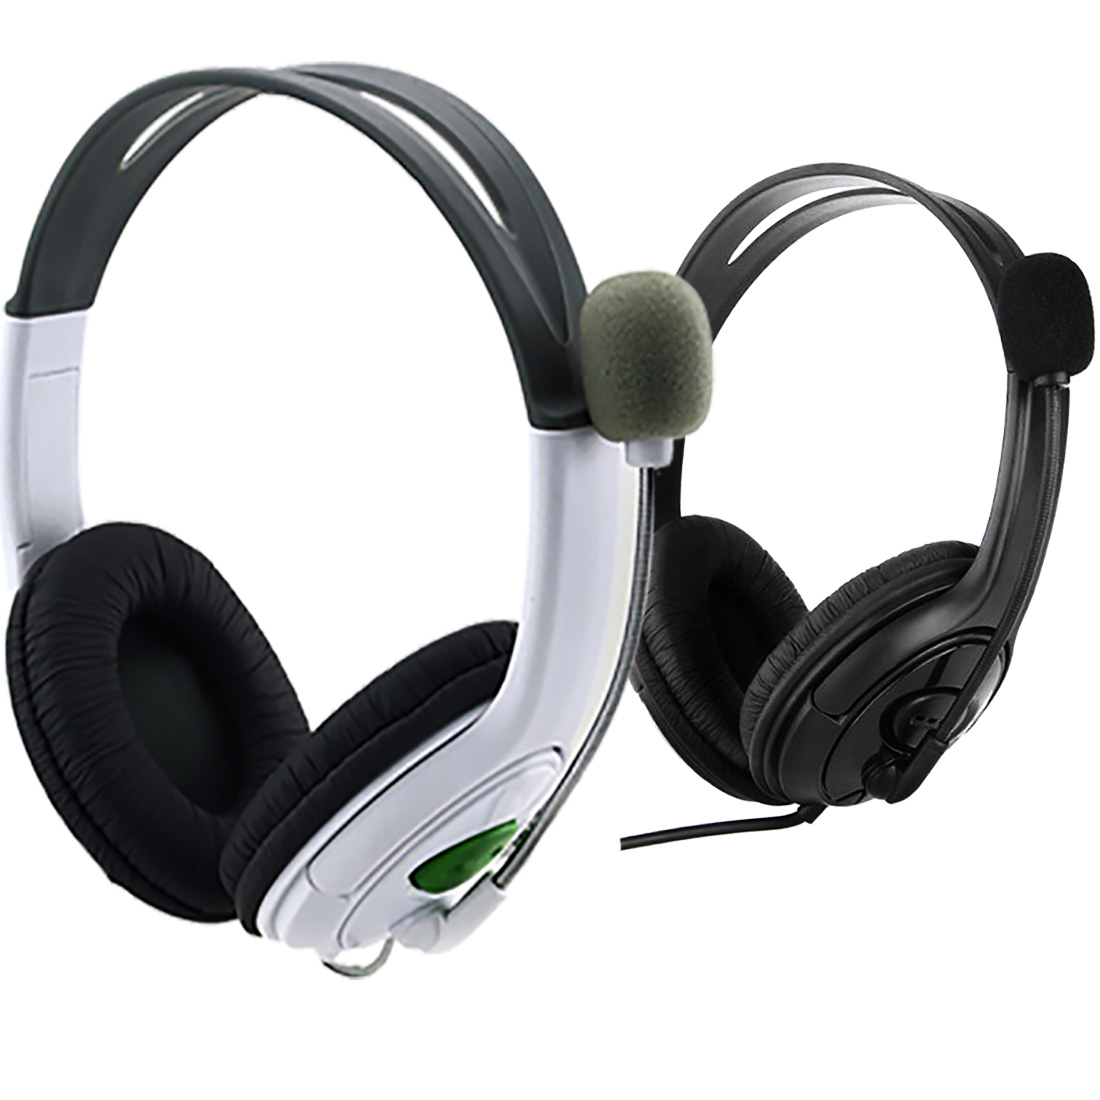 Marsnaska PC Gamer Over-ear Game Gaming Headphone Headset usb dual Earphone Headband with Mic Stereo Sound Bass for ps3 pc джемпер для девочки sela цвет светло серый меланж jr 614 150 6415 размер 152 12 лет